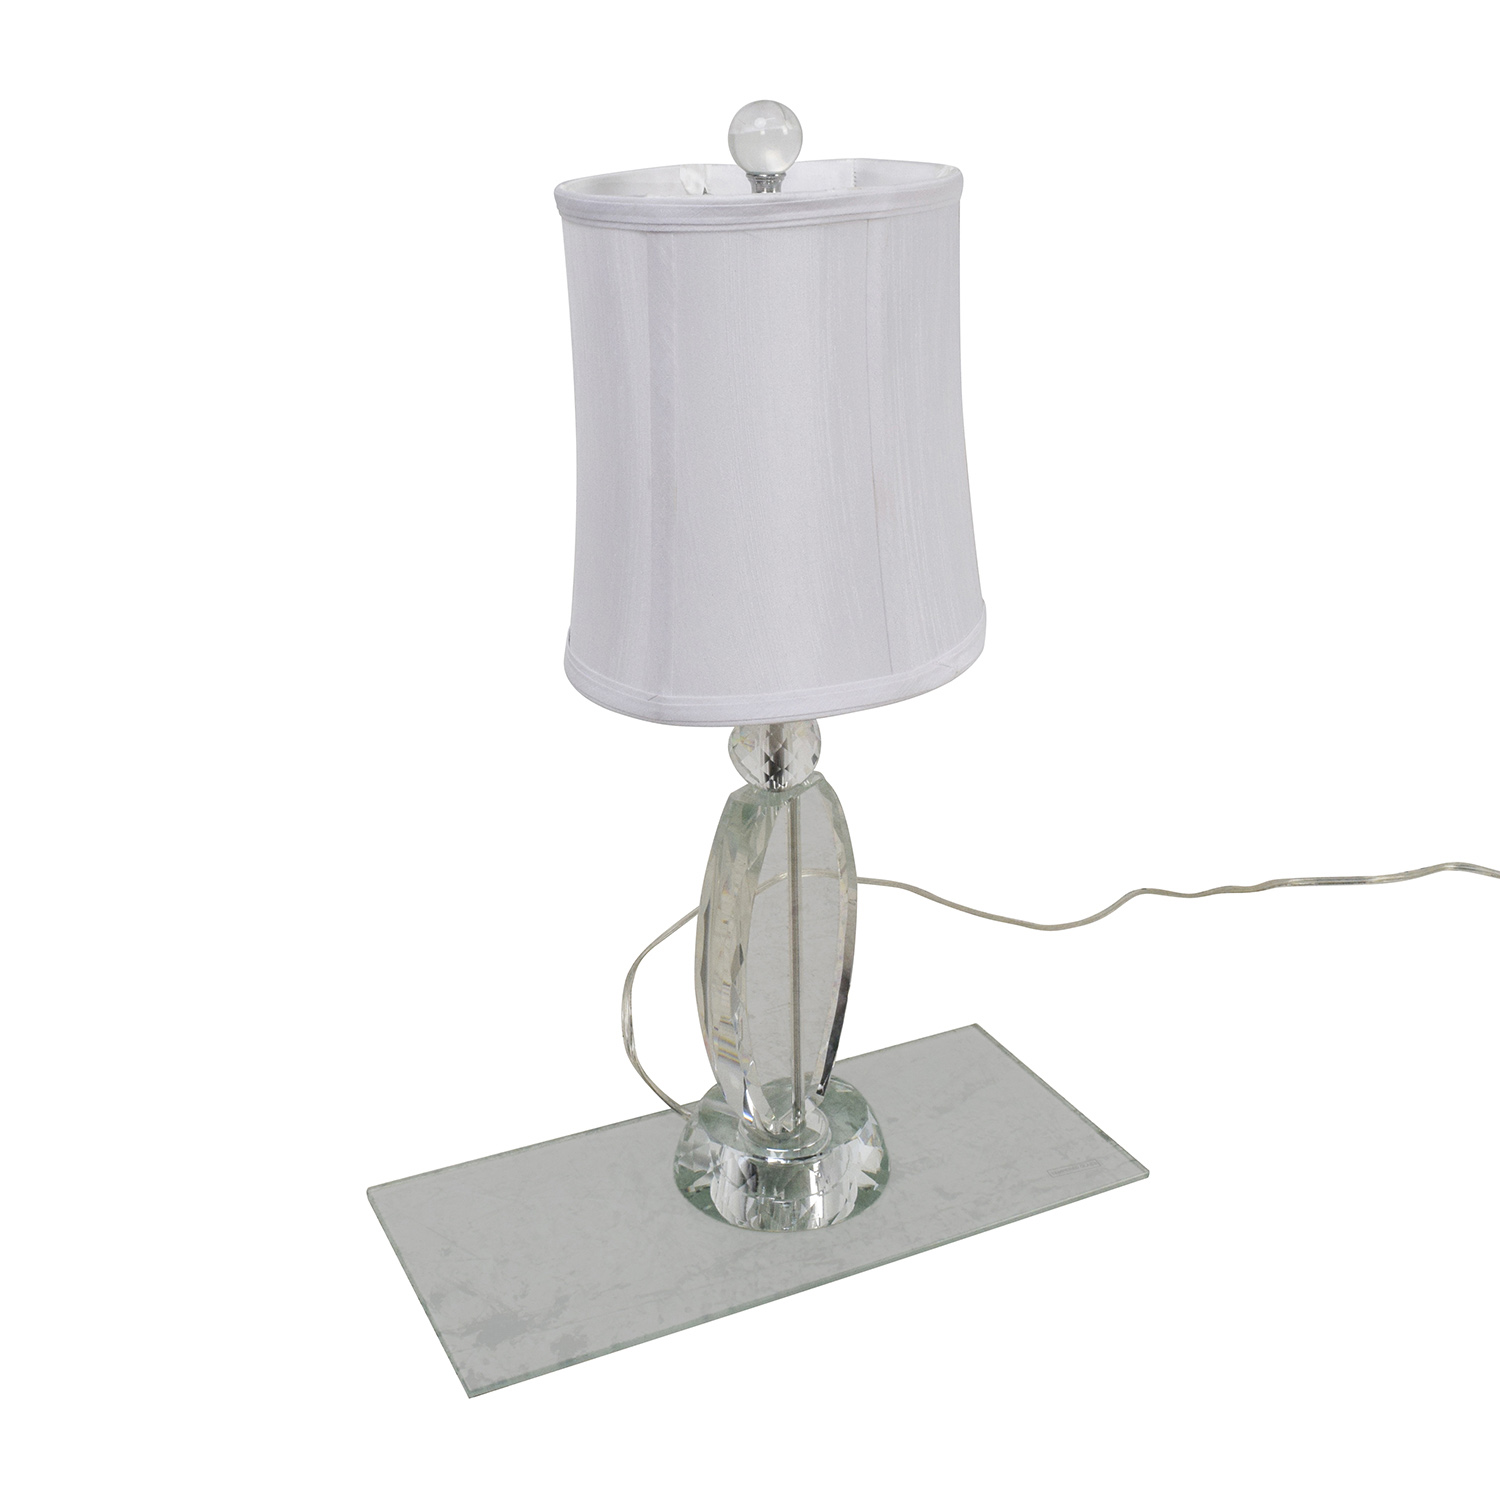 buy Crystal Lamp With White Shade online